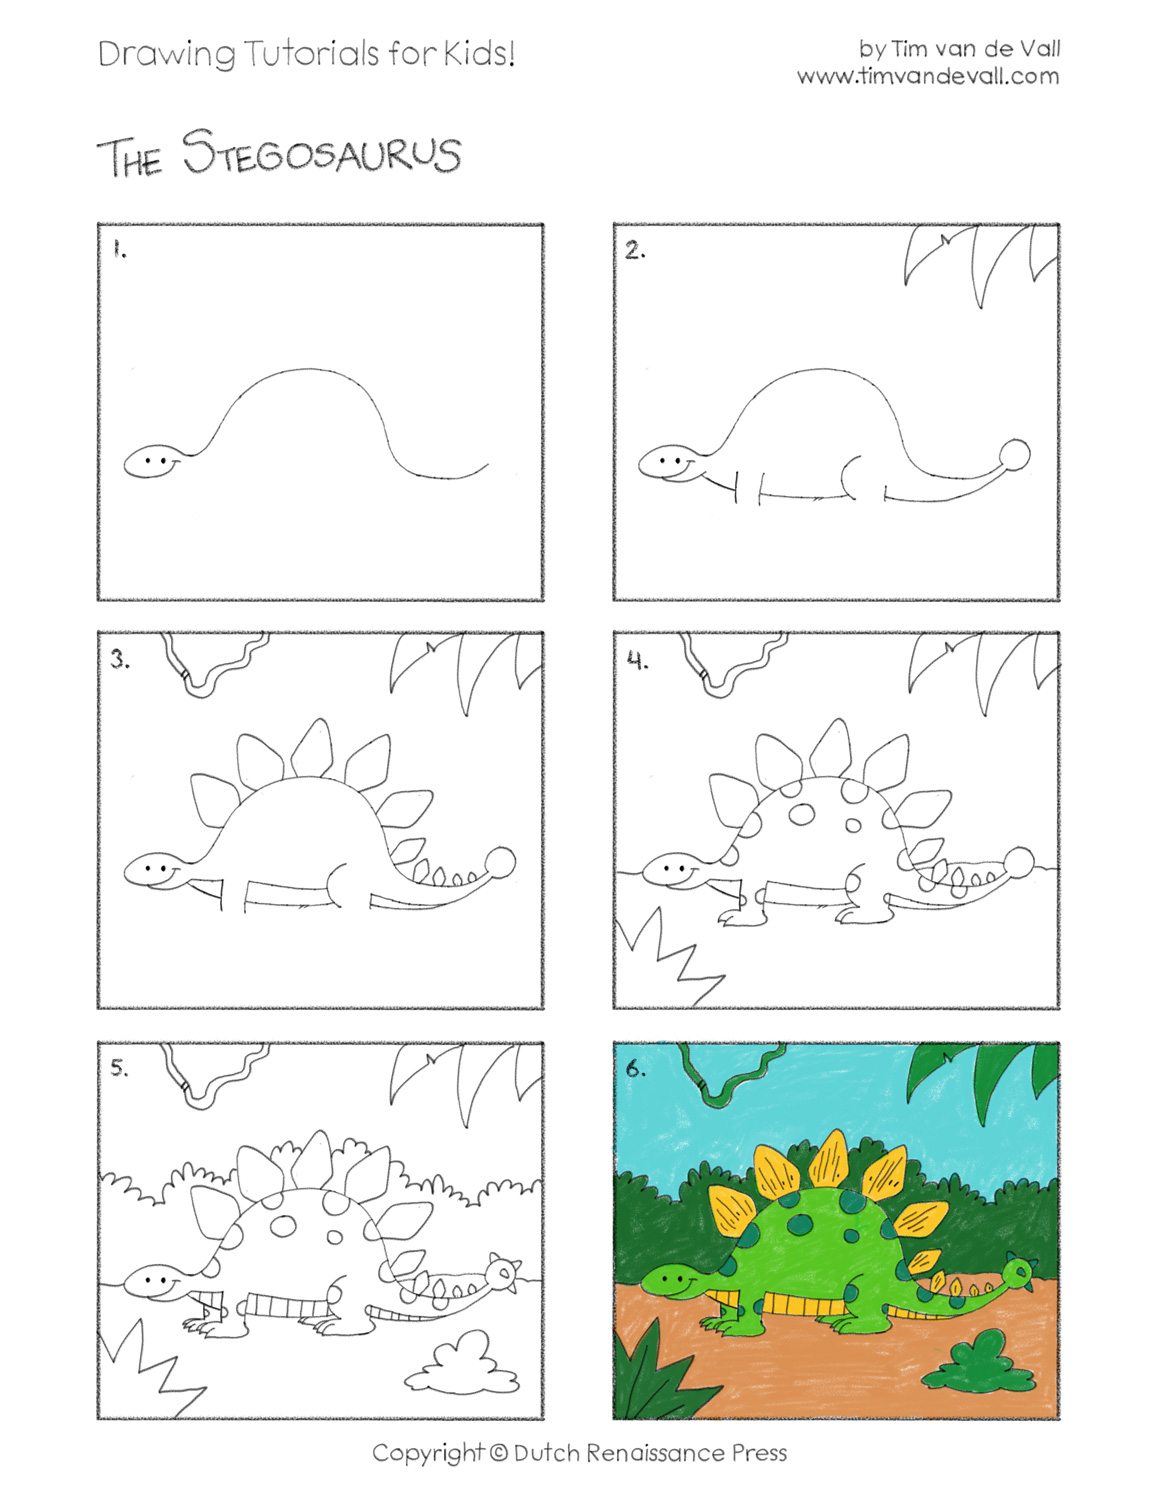 easy drawing tutorials for kids stegosaurus